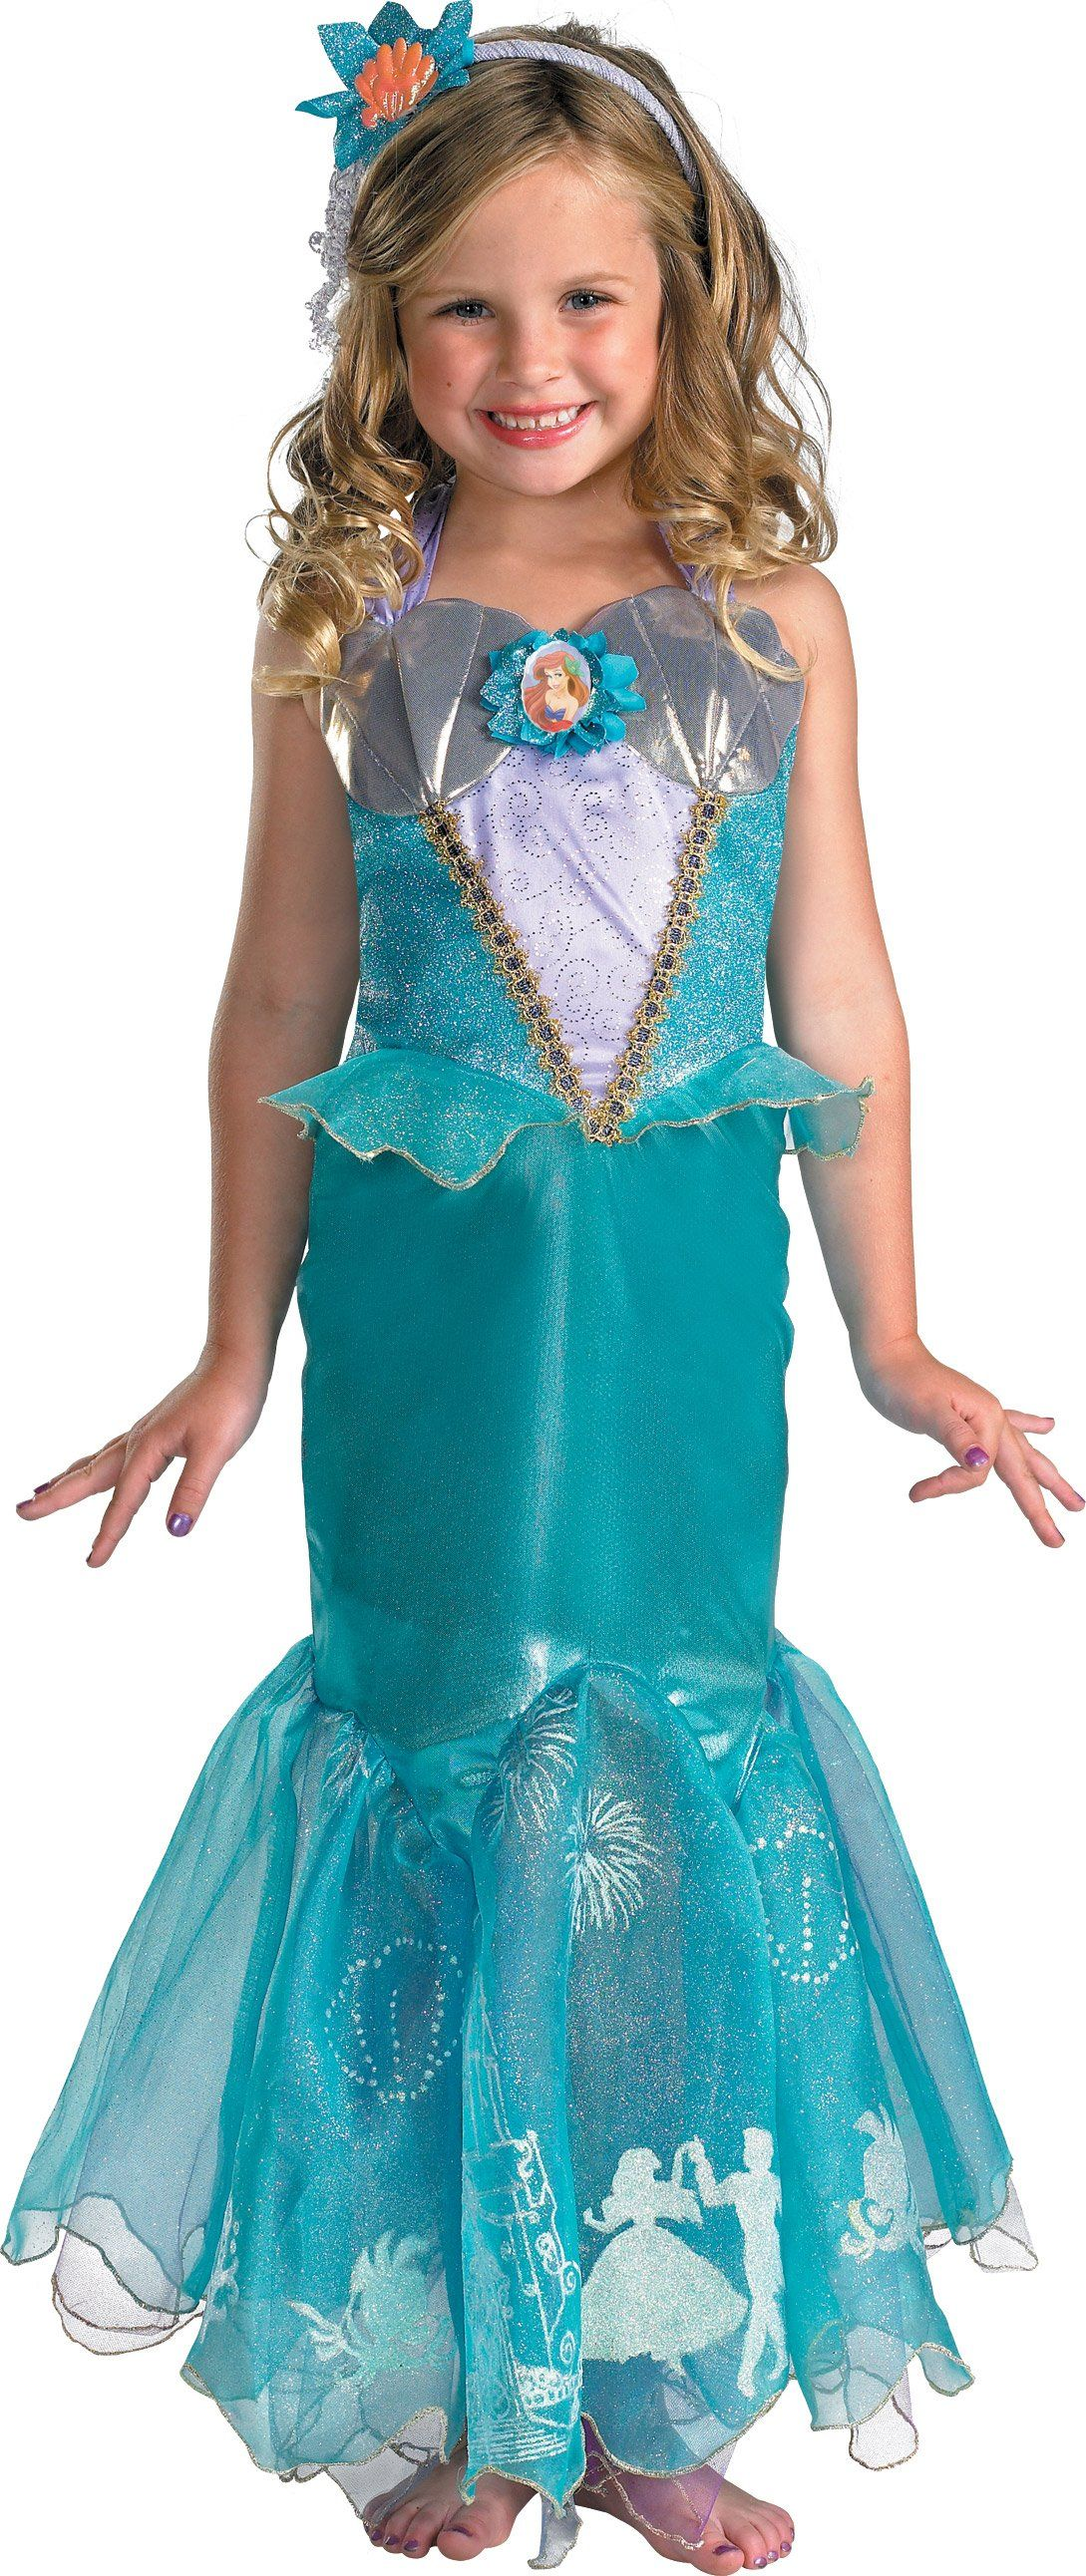 halloween disney costumes disney characters httpwwwplanetgoldilockscom - Mermaid Halloween Costume For Kids